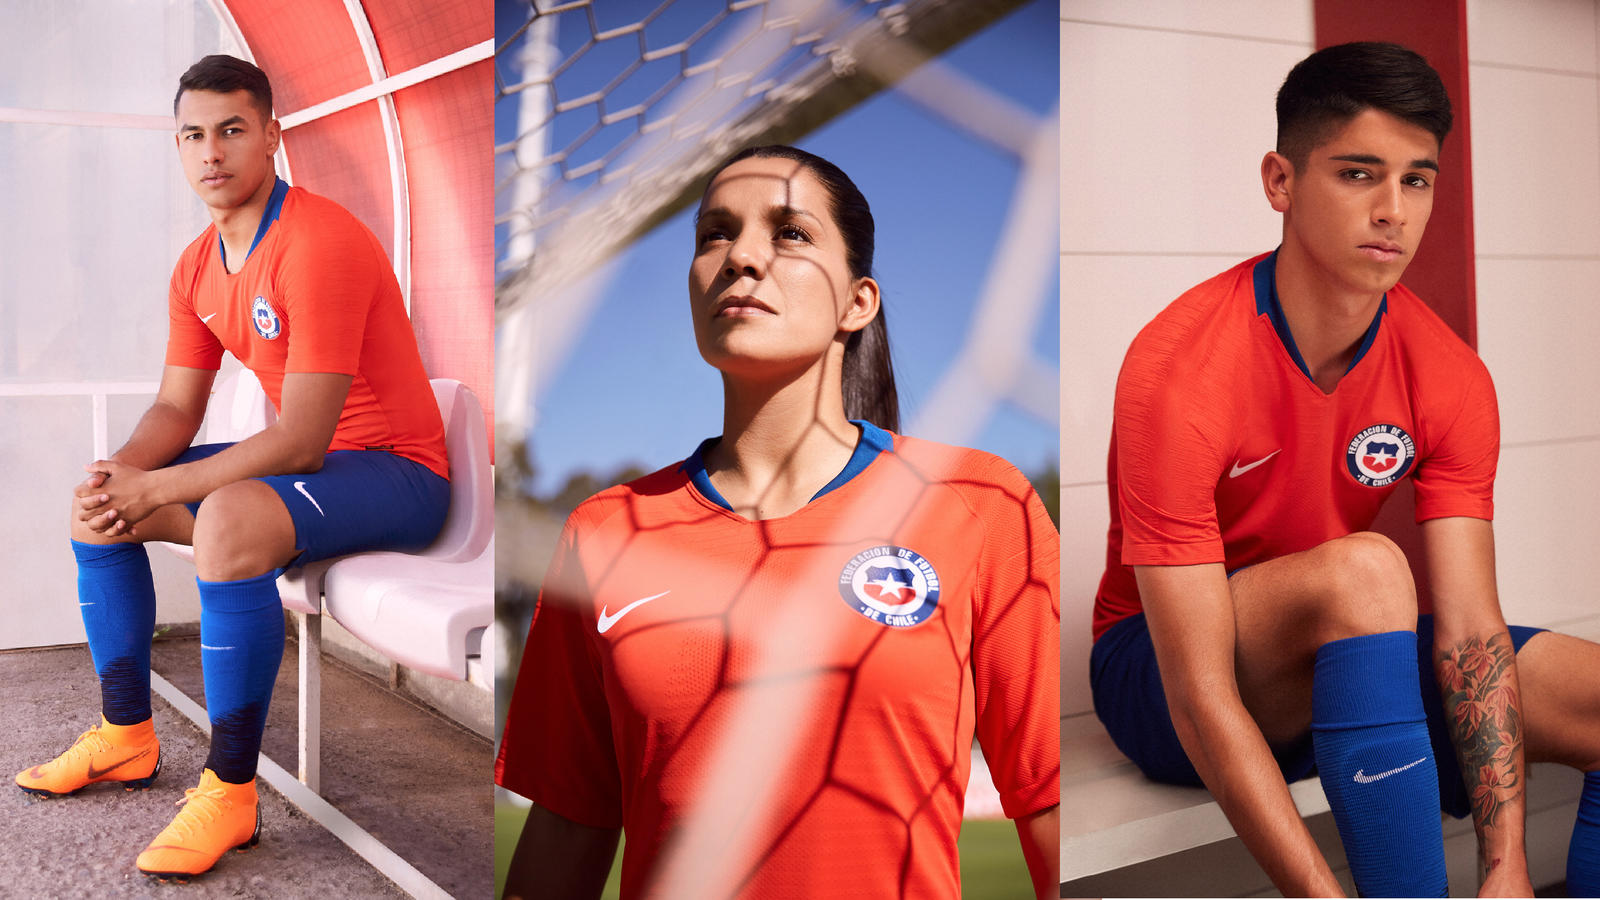 Nike news chile soccer jersey triptic hd 1600